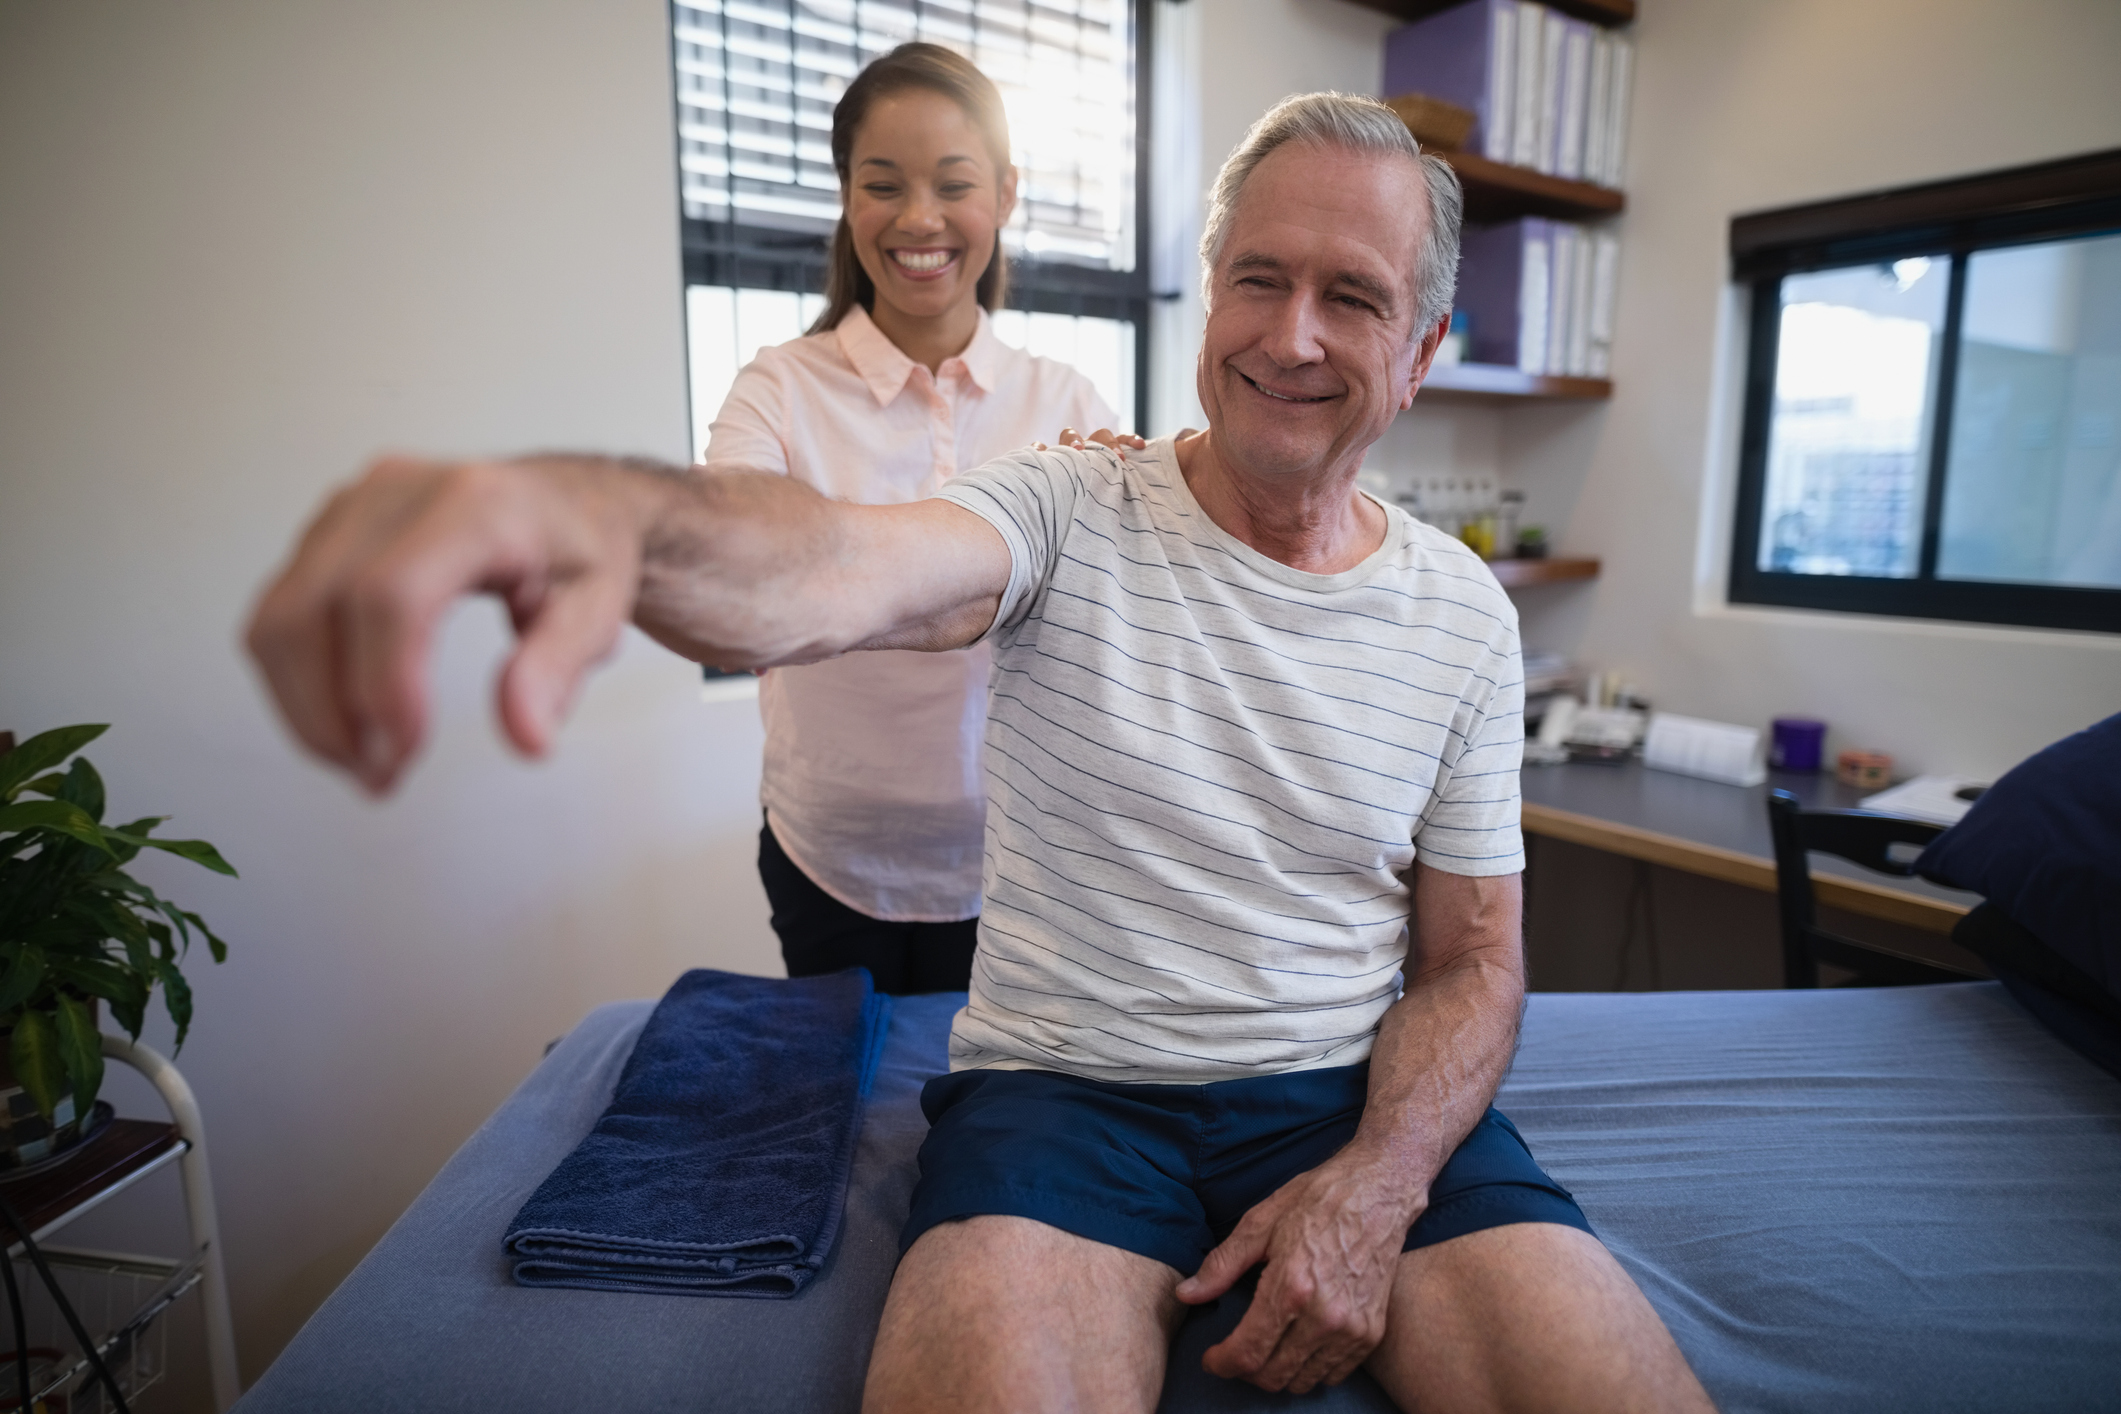 Why You Don't Need a Referral To Visit a Physical Therapist